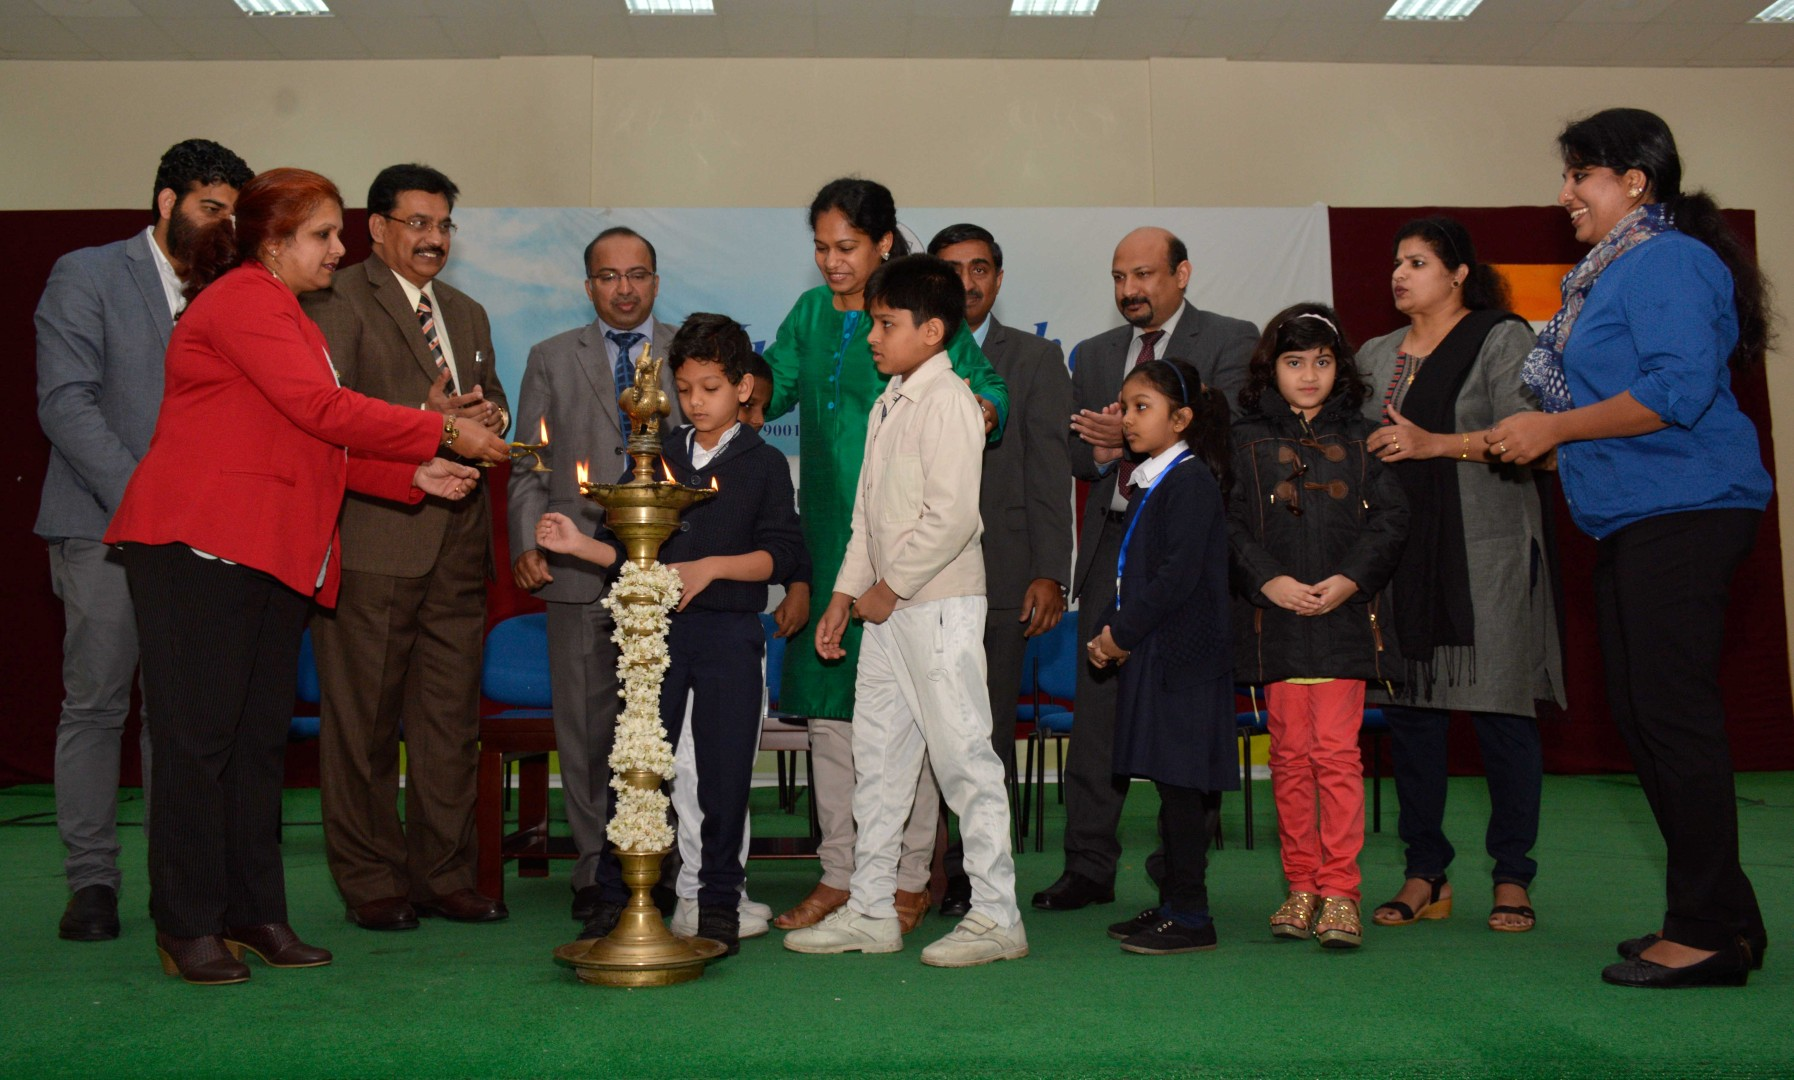 INAGURATION OF SPORTS ACADEMY